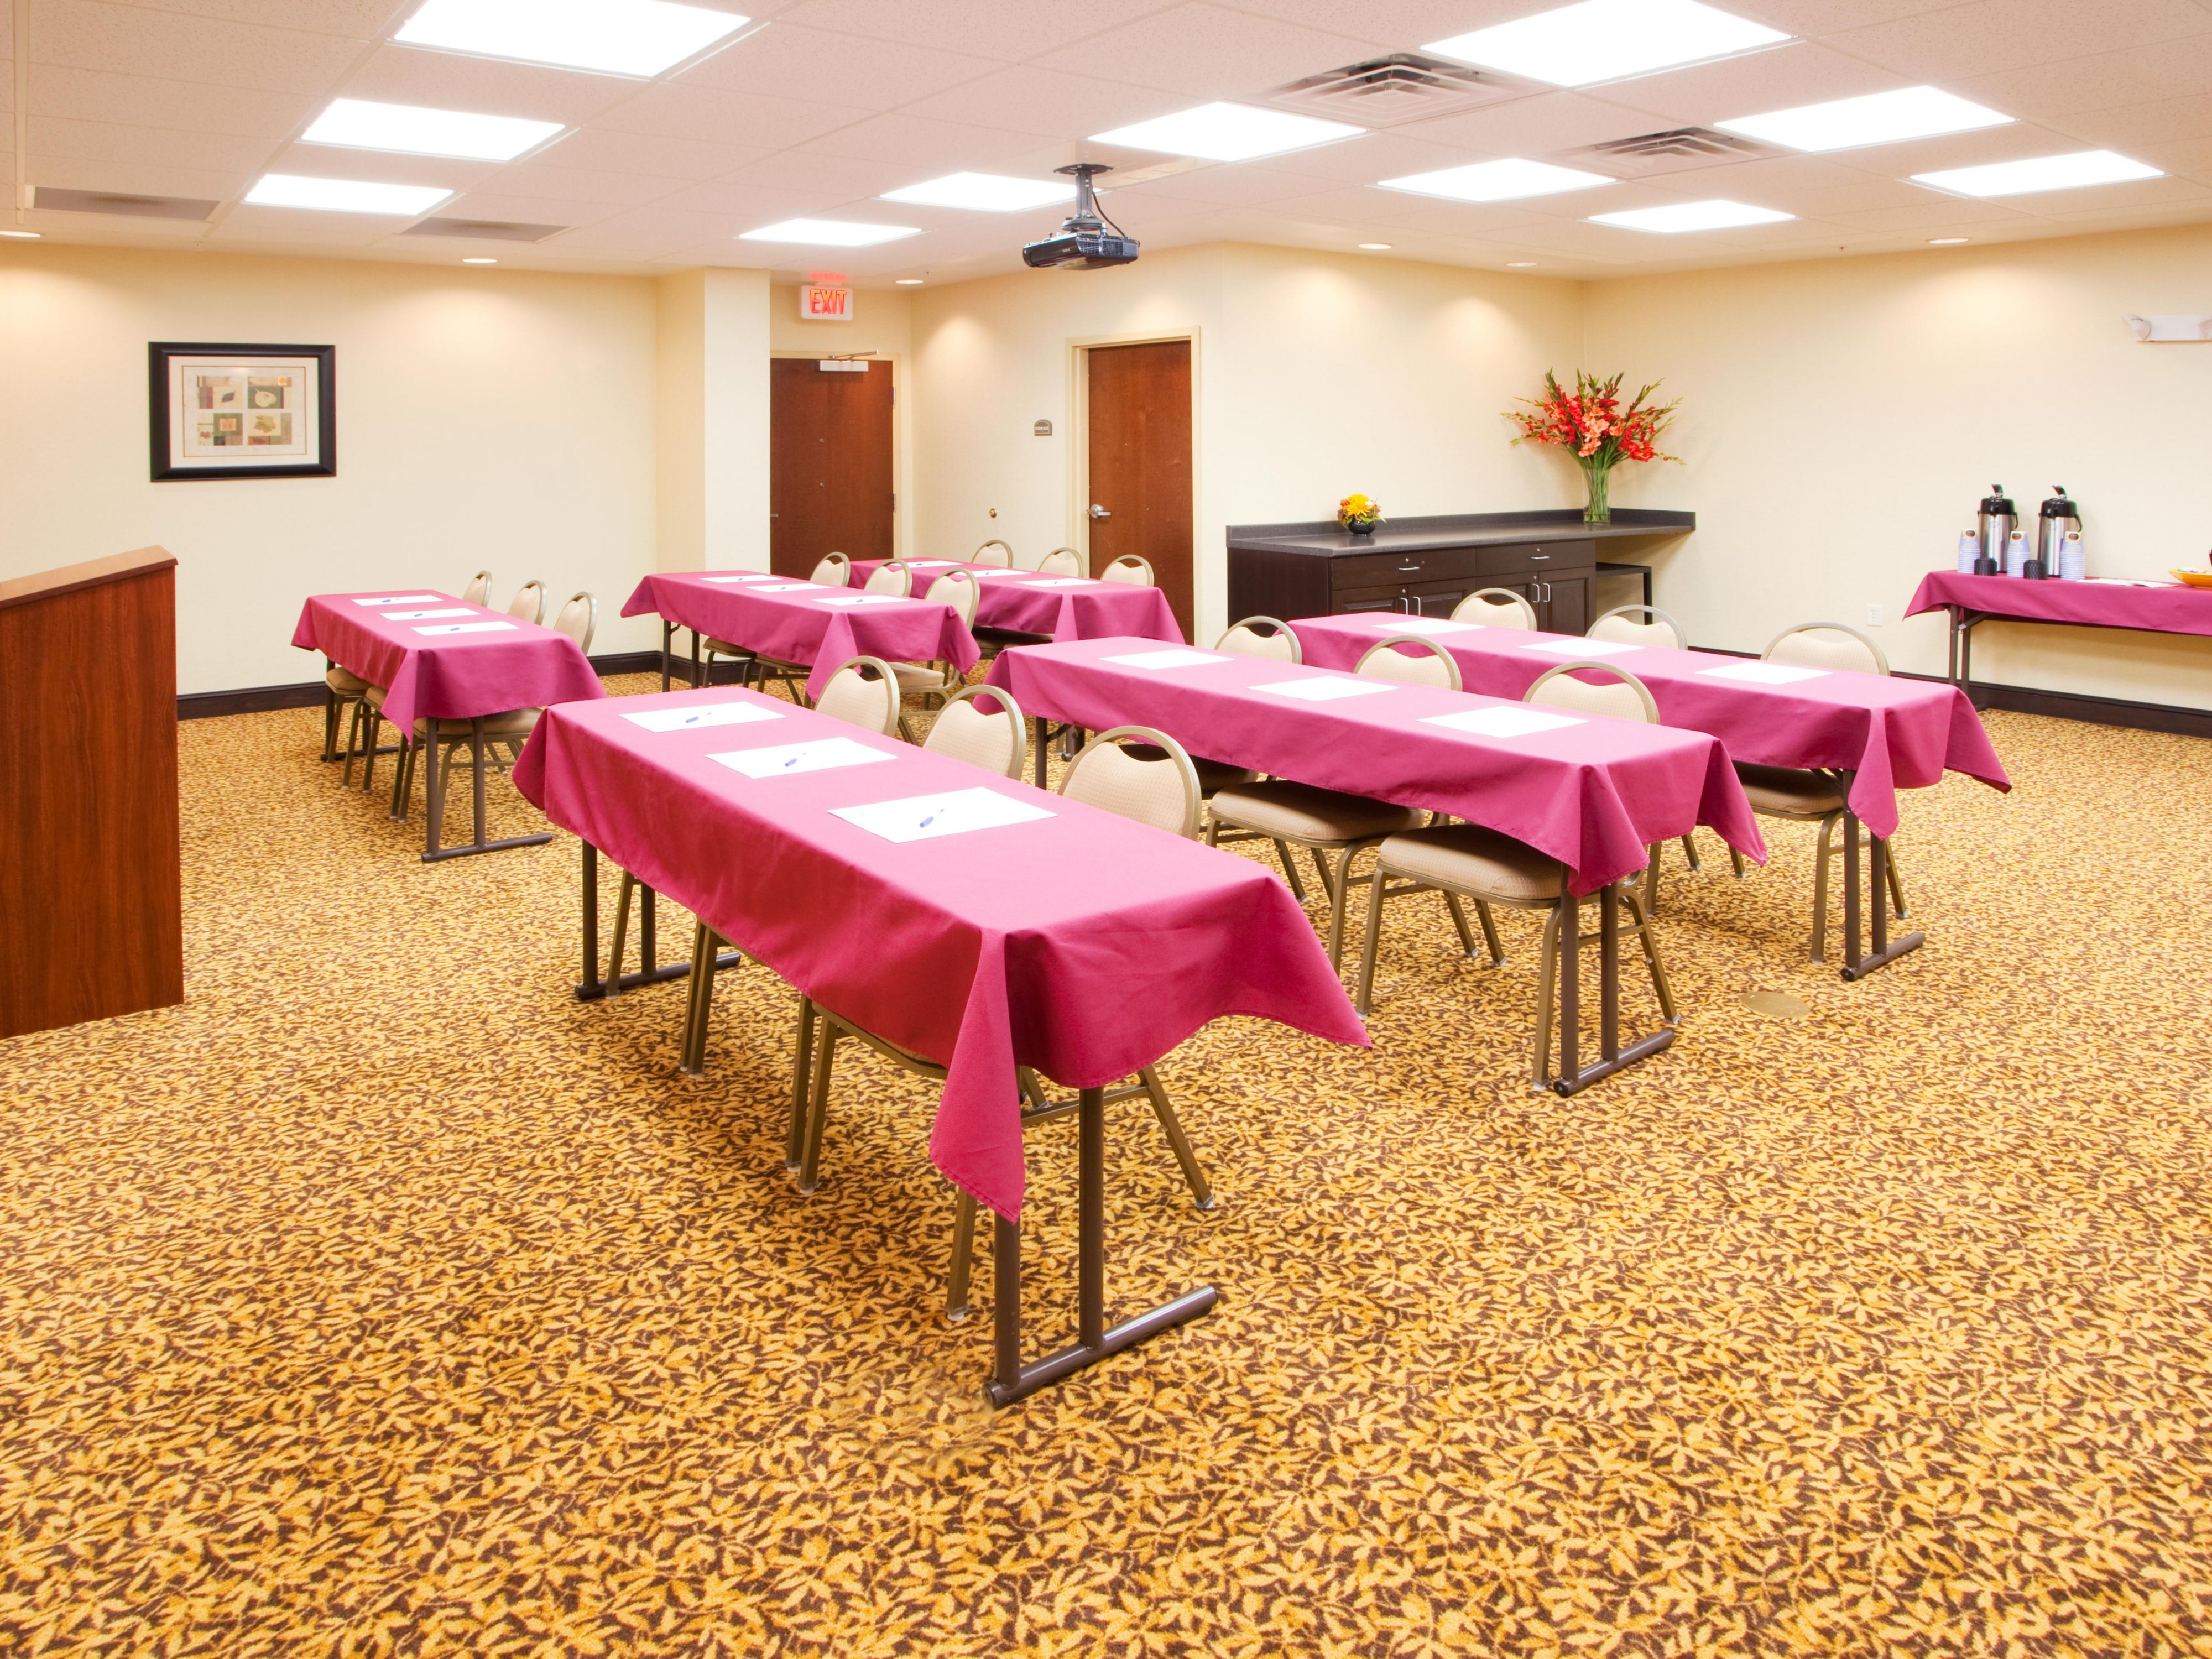 Our meeting room is a great place to hold parties or conferences